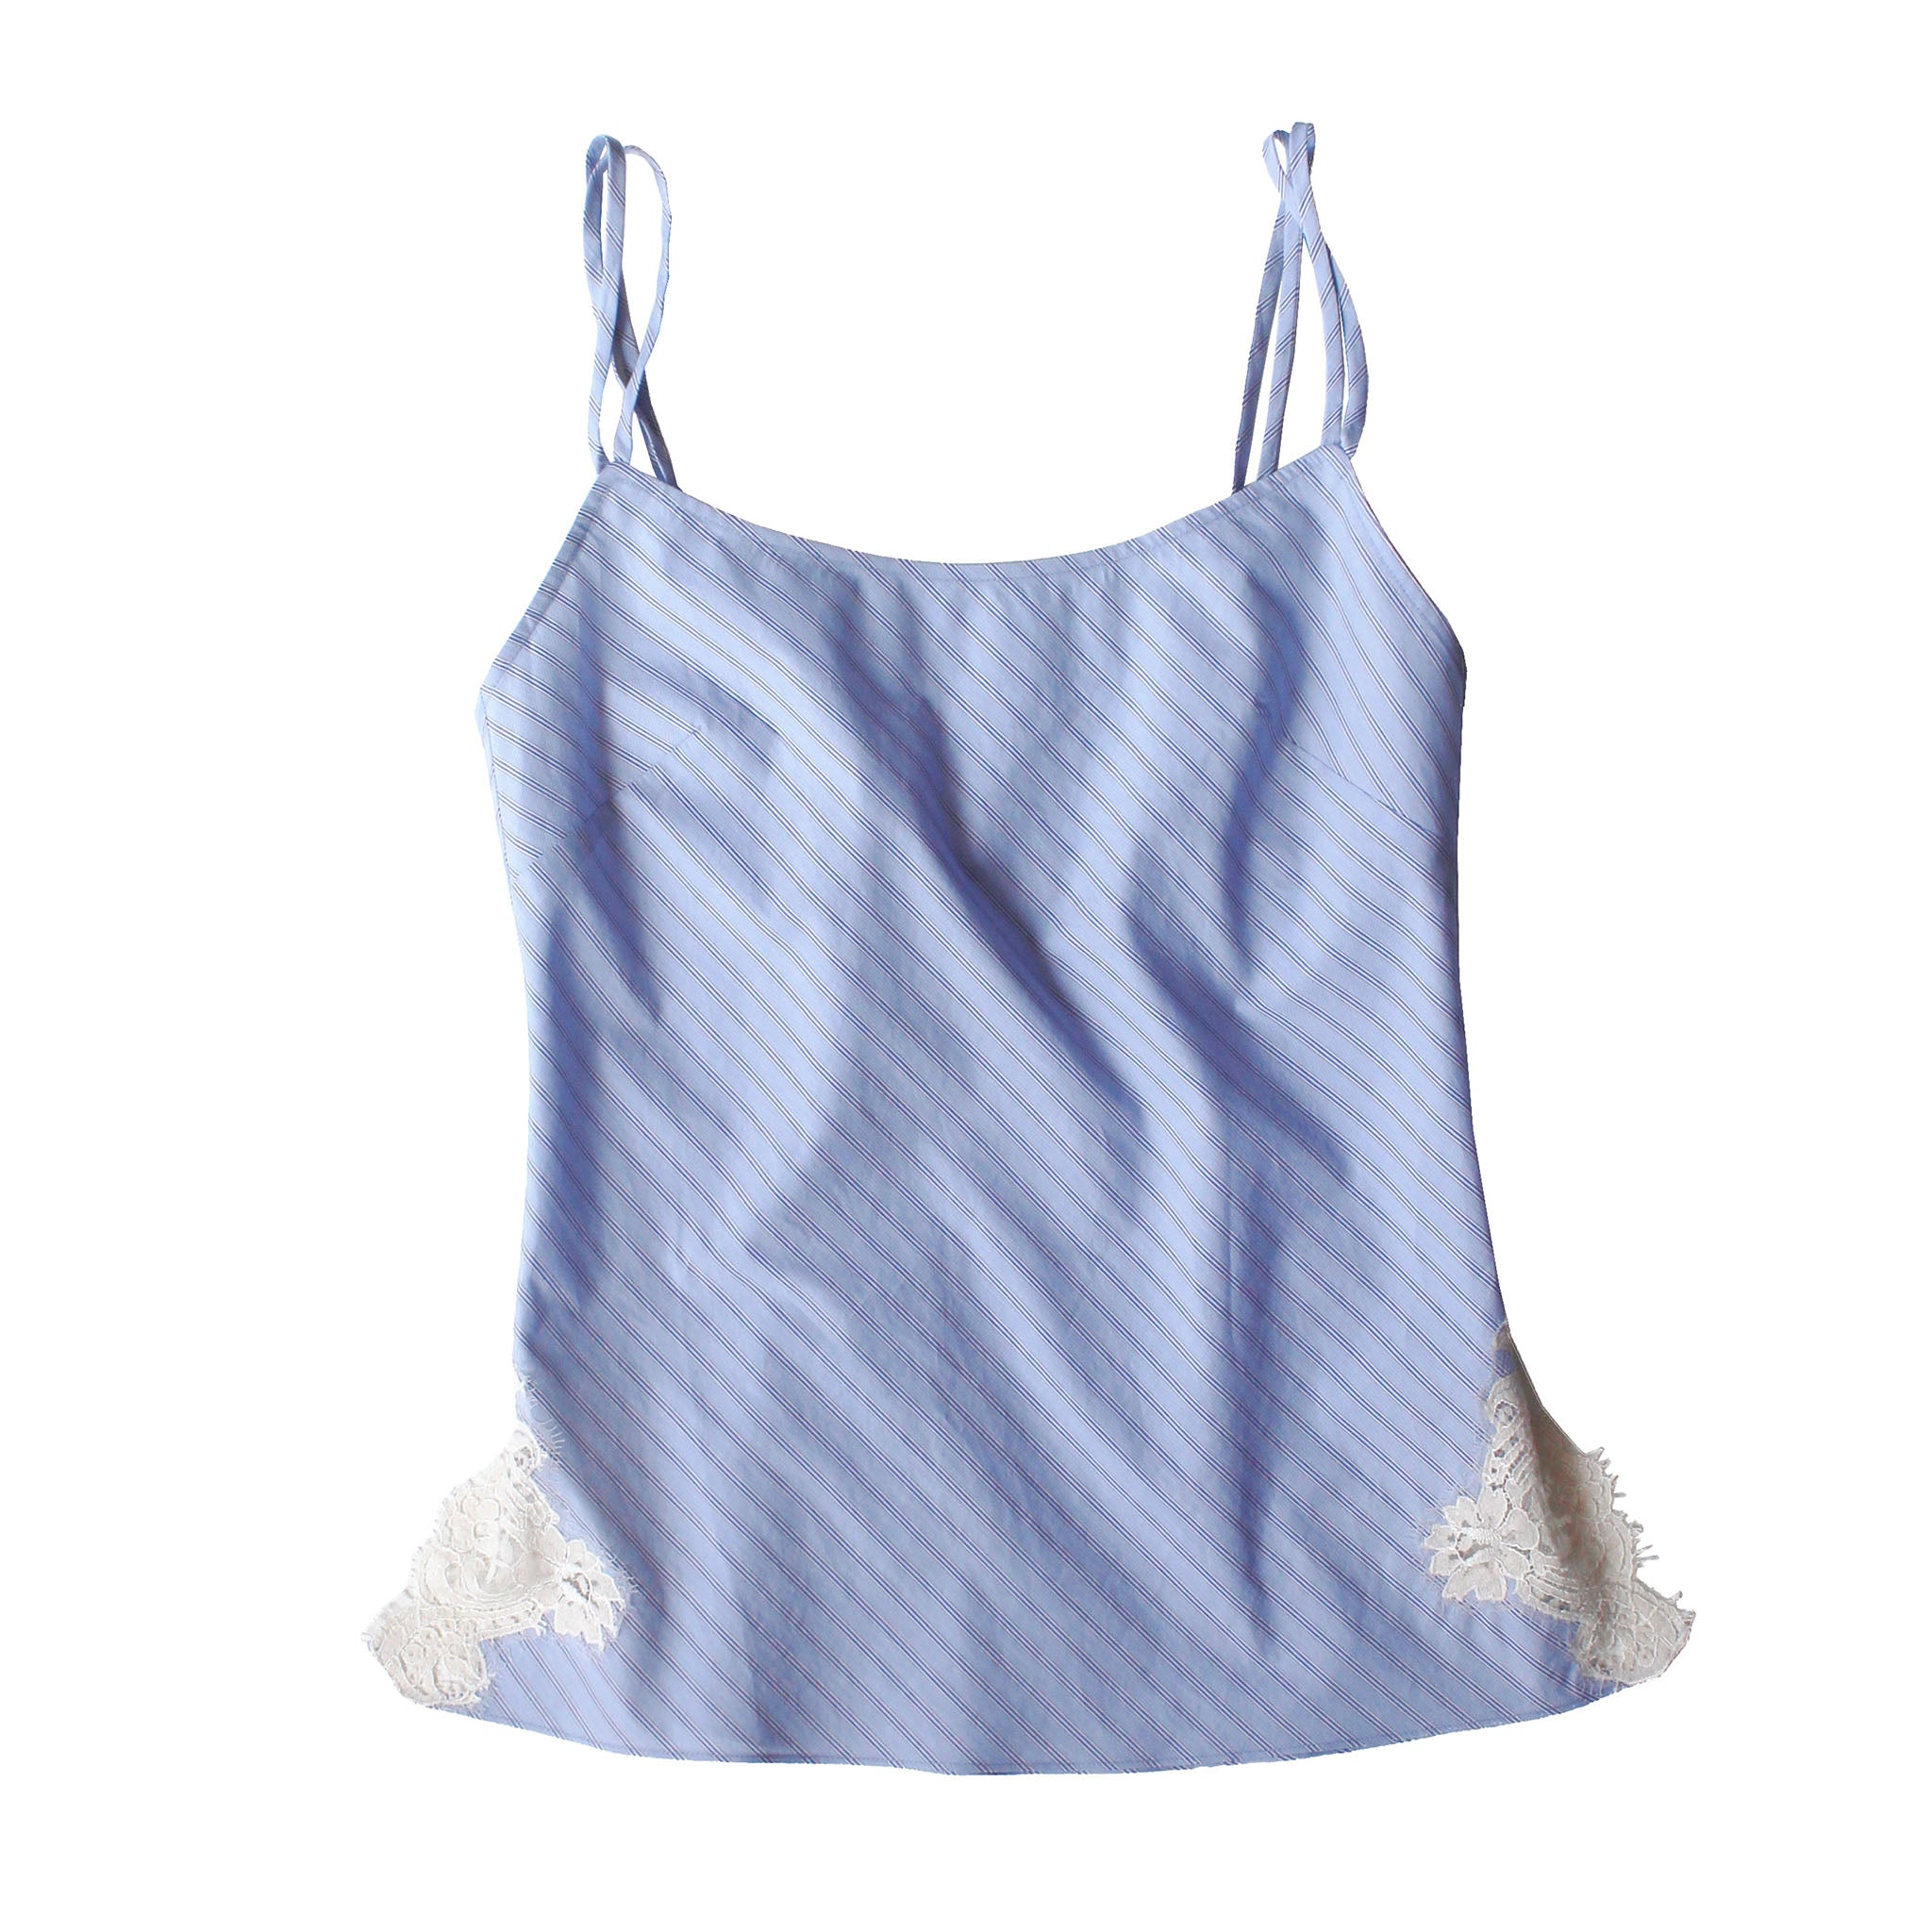 FINAL SALE - Olwen Camisole in Italian Cotton Blue Train Stripe